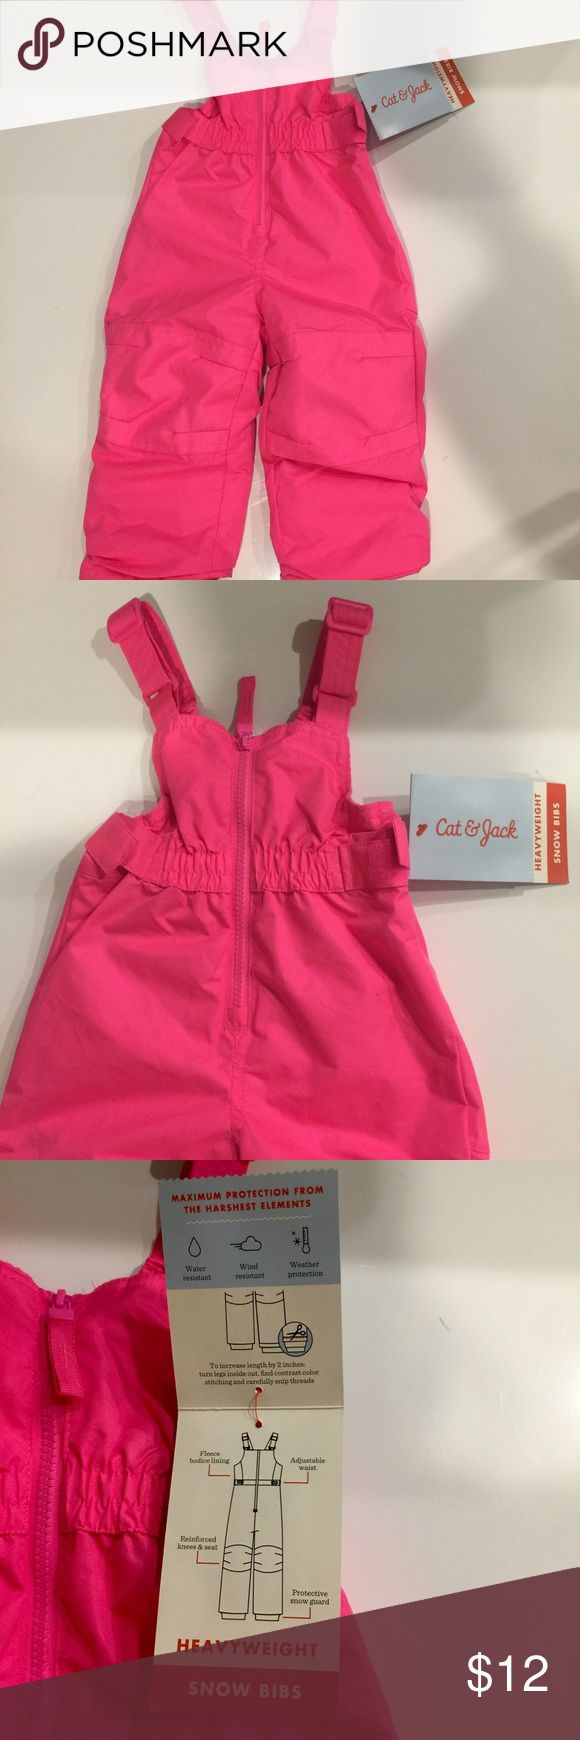 CAT & JACK  HEAVYWEIGHT SNOW BIBS NWT/ MATCHING JACKET LISTED & SOLD SEPARATELY MAXIMUM PROTECTION FROM THE HARSHEST ELEMENTS. -WATER RESISTANT -WIND RESISTANT -WEATHER PROTECTION -FLEECE BODICE LINING -ADJUSTABLE WAIST -REINFORCED KNEES & SEAT -PROTECTIVE SNOW GUARD 💫YOU CAN EVEN INCREASE THE LENGTH!! CAT & JACK Jackets & Coats